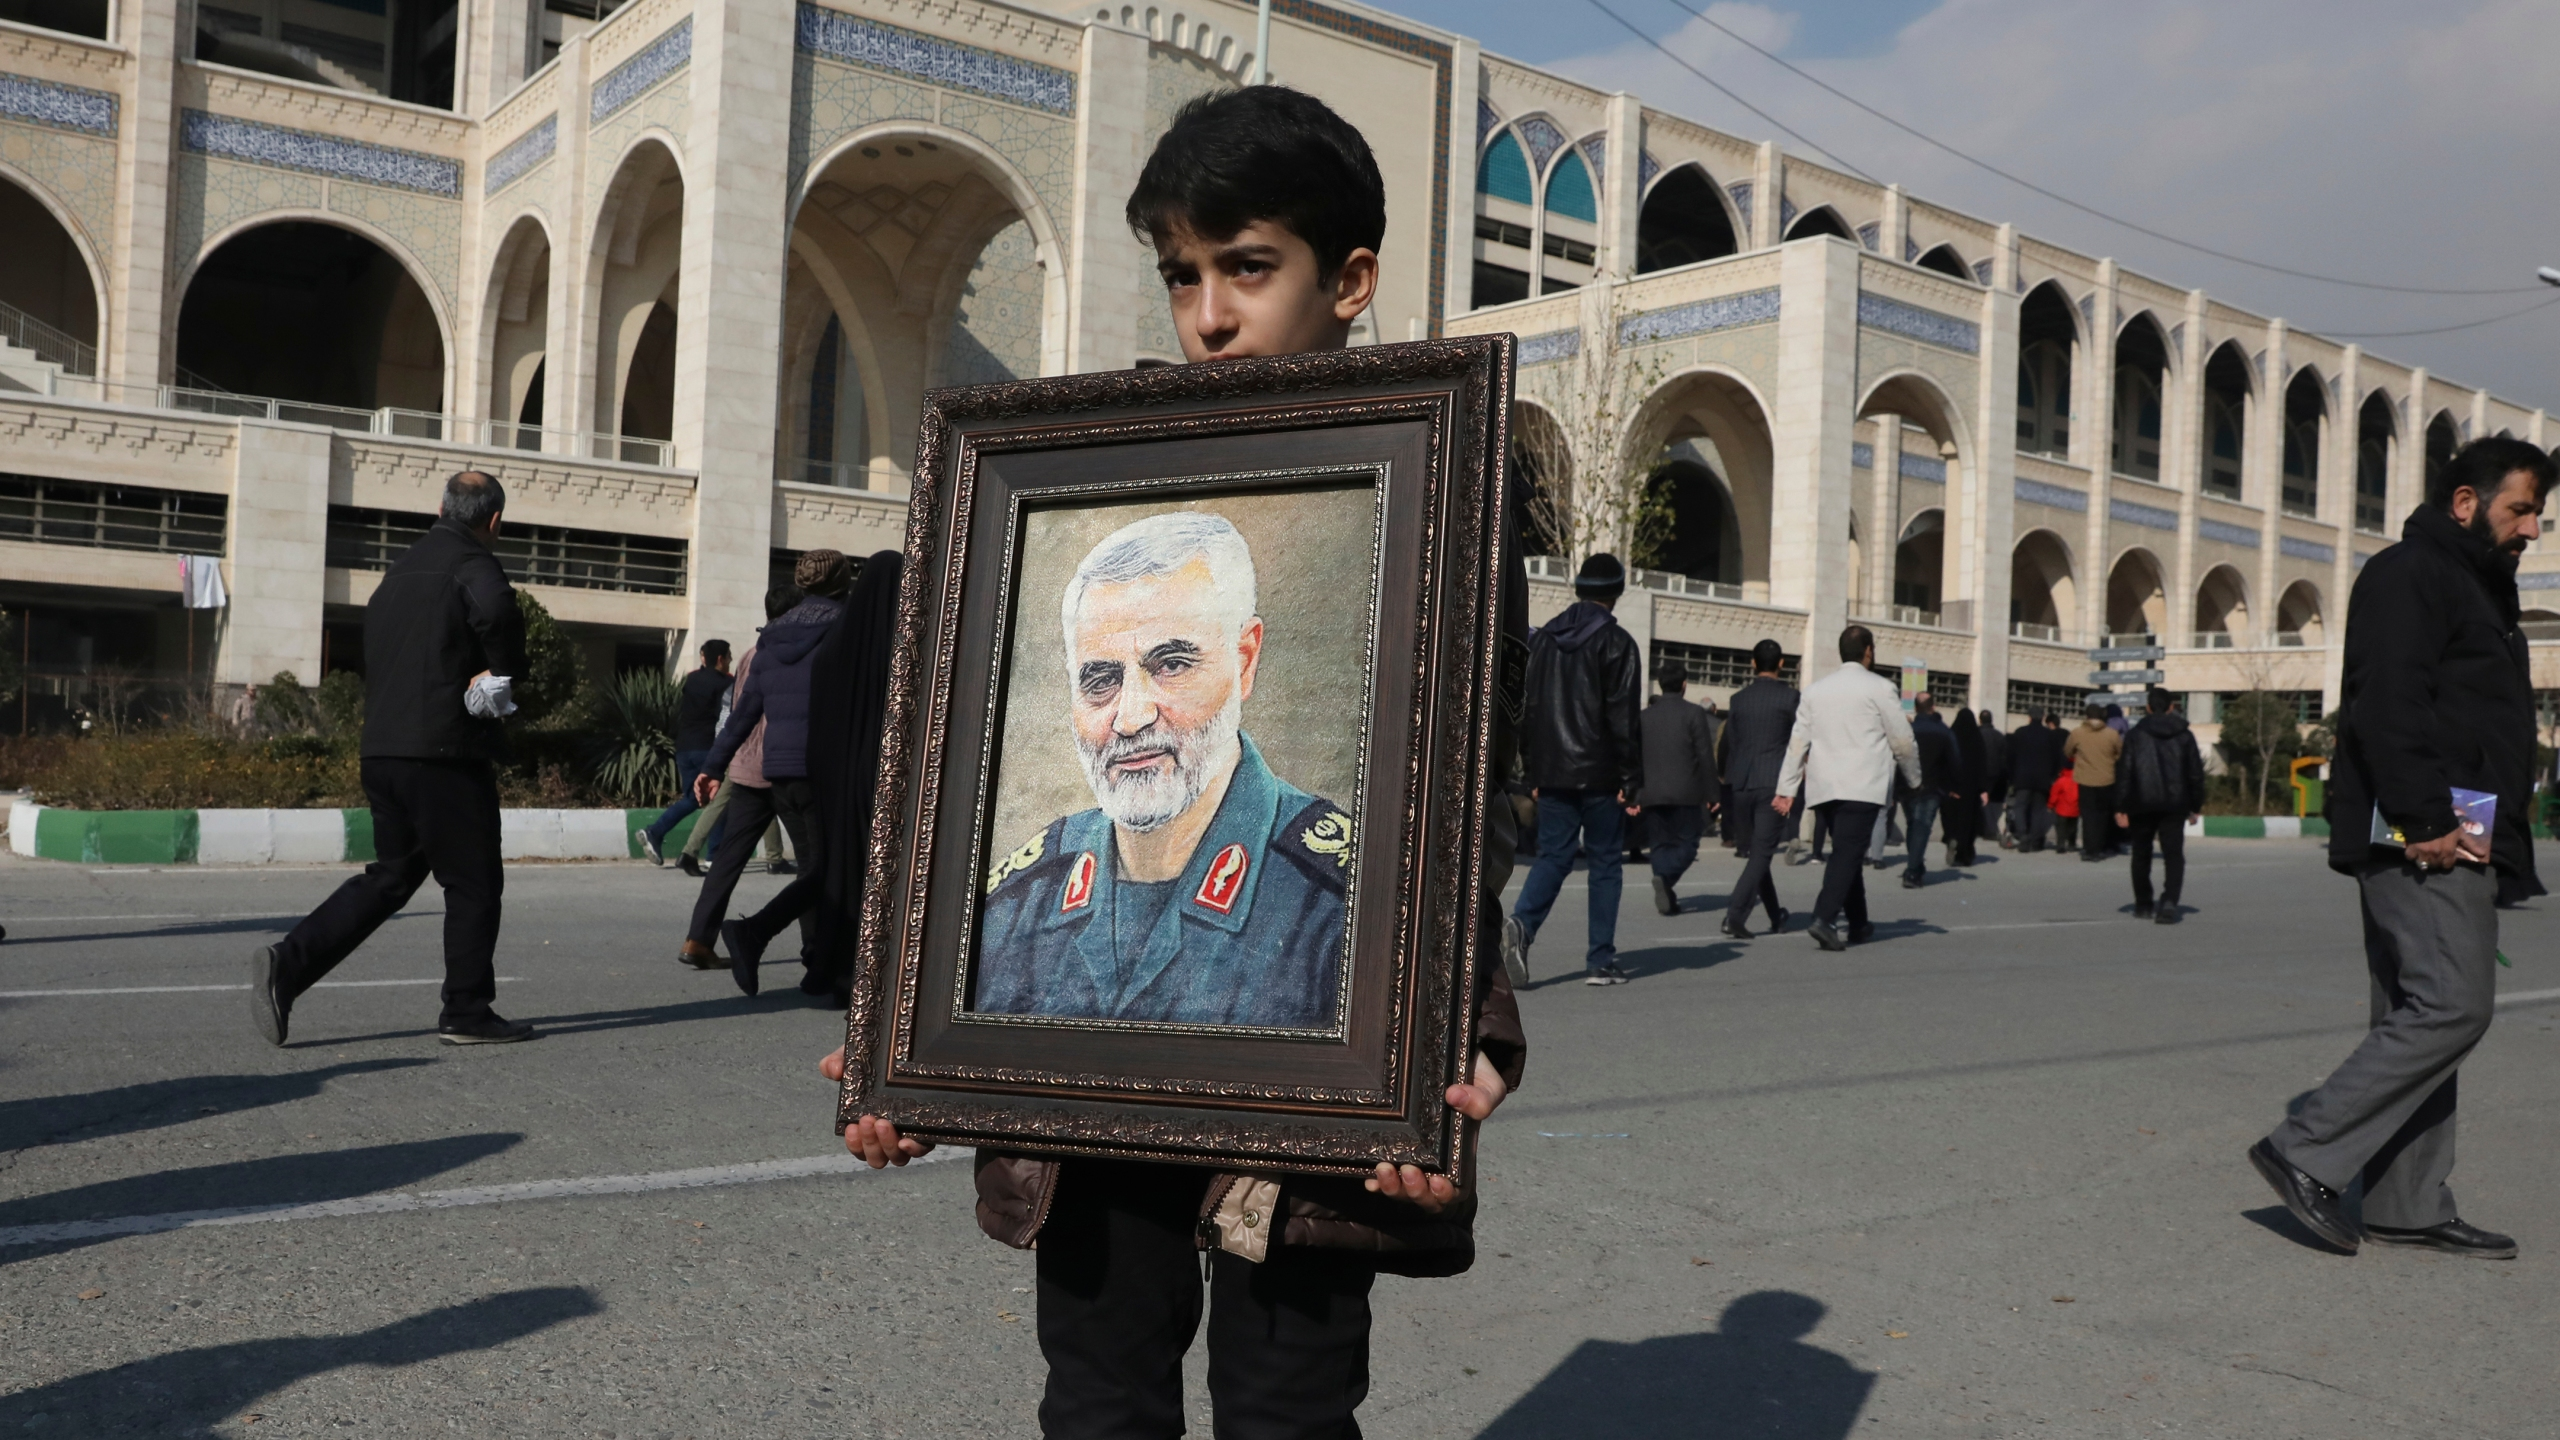 """A boy carries a portrait of Iranian Revolutionary Guard Gen. Qassem Soleimani, who was killed in the U.S. airstrike in Iraq, prior to the Friday prayers in Tehran, Iran, Friday Jan. 3, 2020. Iran has vowed """"harsh retaliation"""" for the U.S. airstrike near Baghdad's airport that killed Tehran's top general and the architect of its interventions across the Middle East, as tensions soared in the wake of the targeted killing. (AP Photo/Vahid Salemi)"""